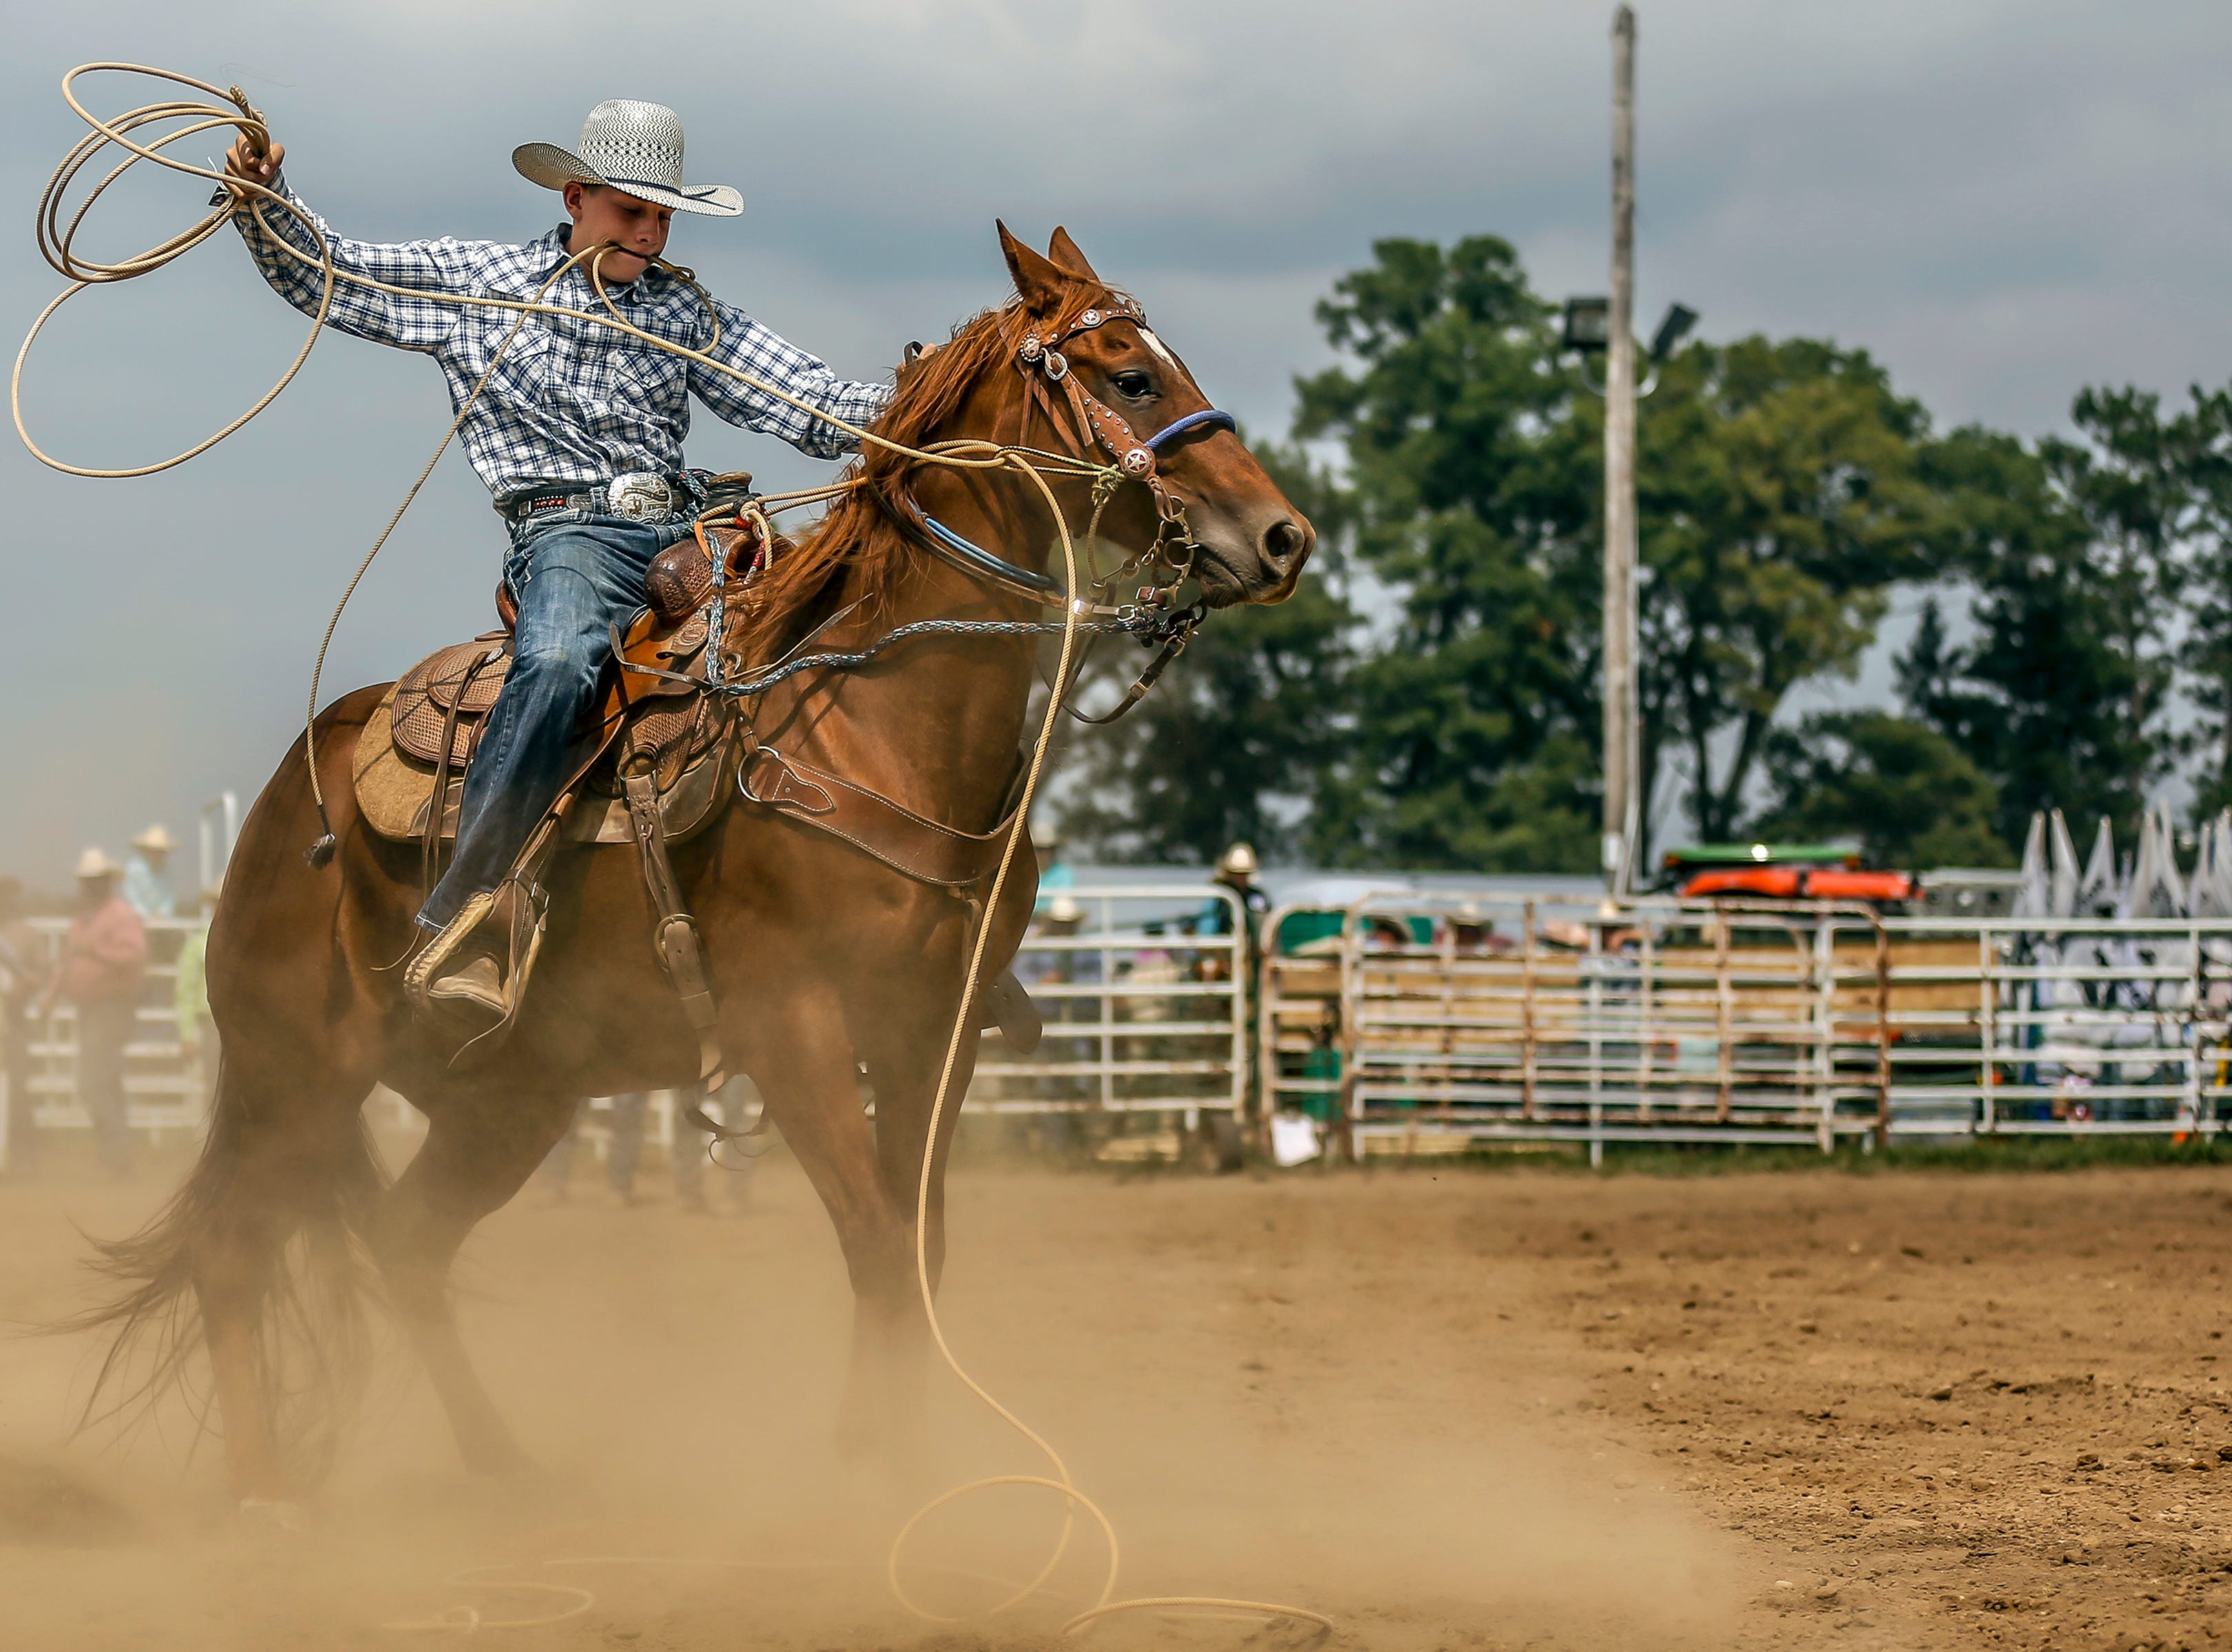 A competitor attempts to rope a calf during the Amherst Little Britches Wisconsin Rodeo in Amherst, Wis., August 17, 2018.